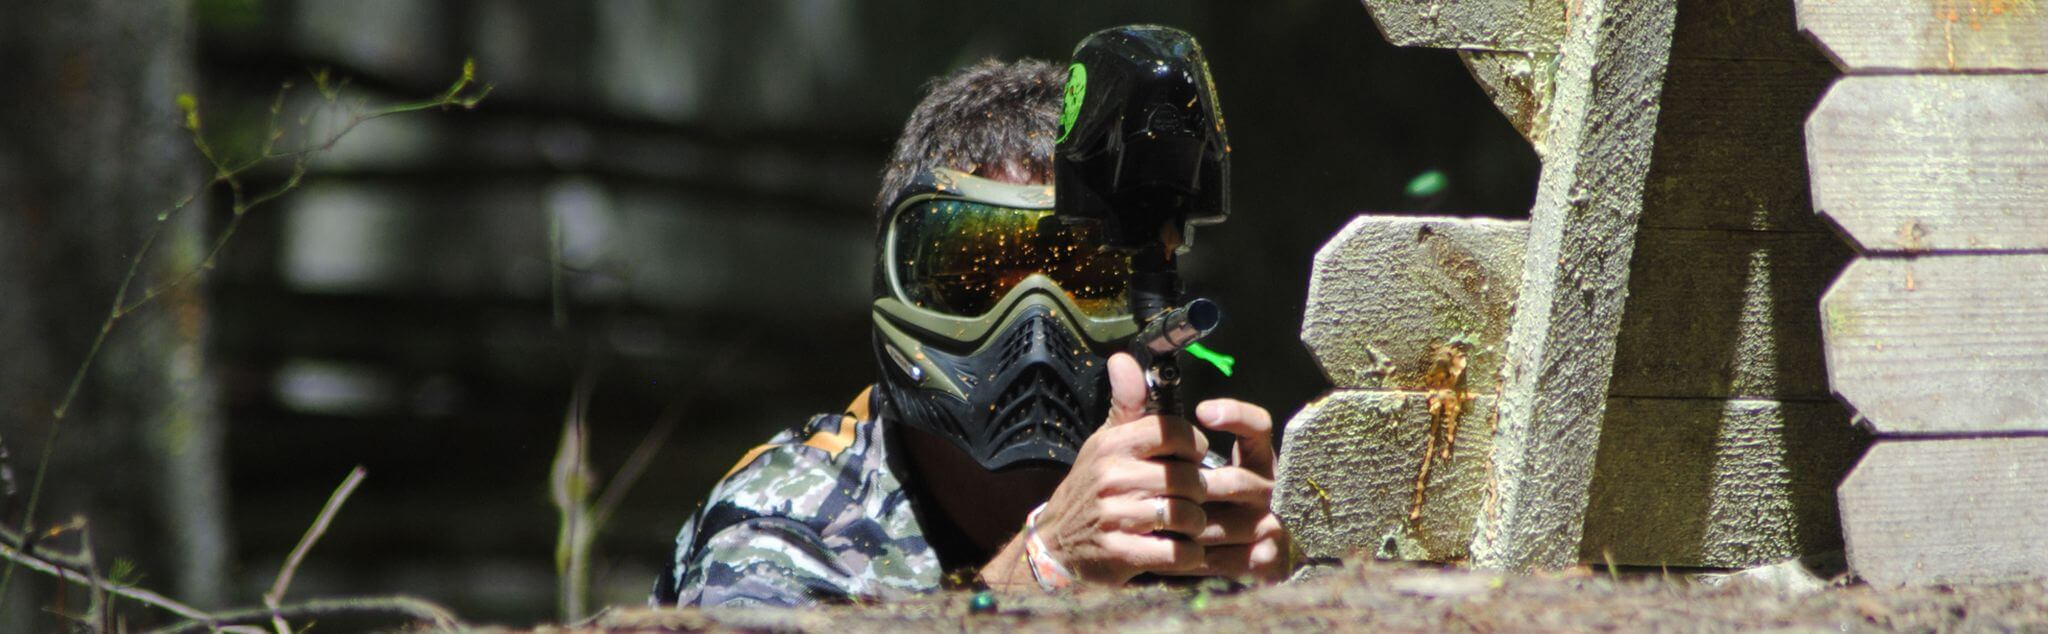 Paintball in Miraflores De La Sierra